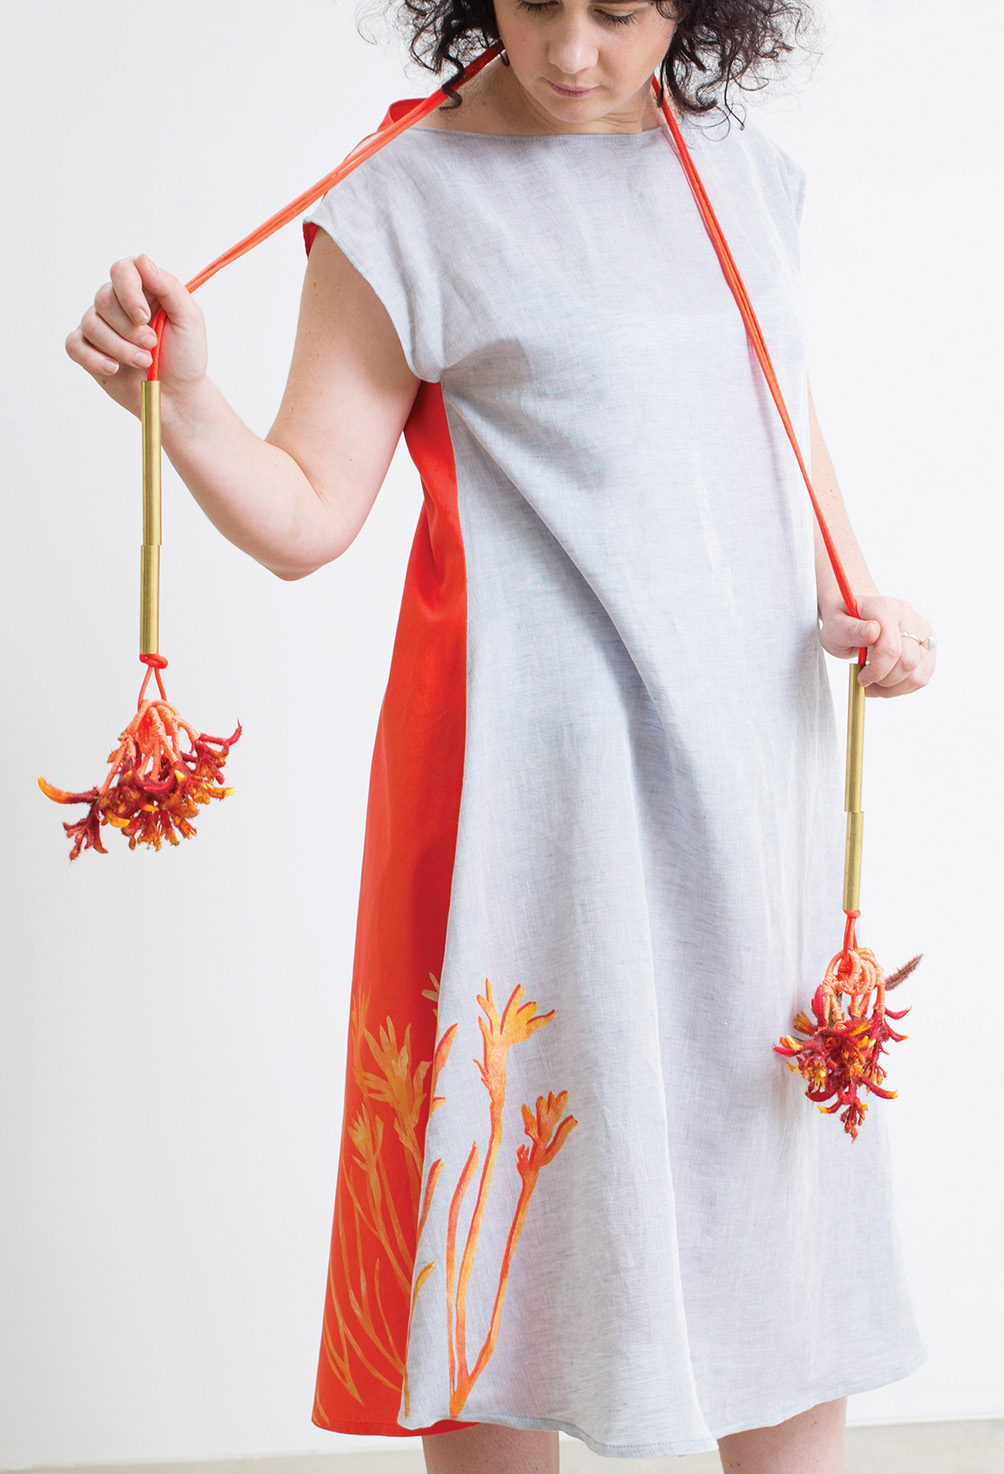 Kangaroo Paw Poi  2017, artificial foliage, brass, beads, thread, paint. Kangaroo Paw dress 2017, long grey and red linen-cotton, hand cut stencil print, one-off. Photographed by Craig Arnold